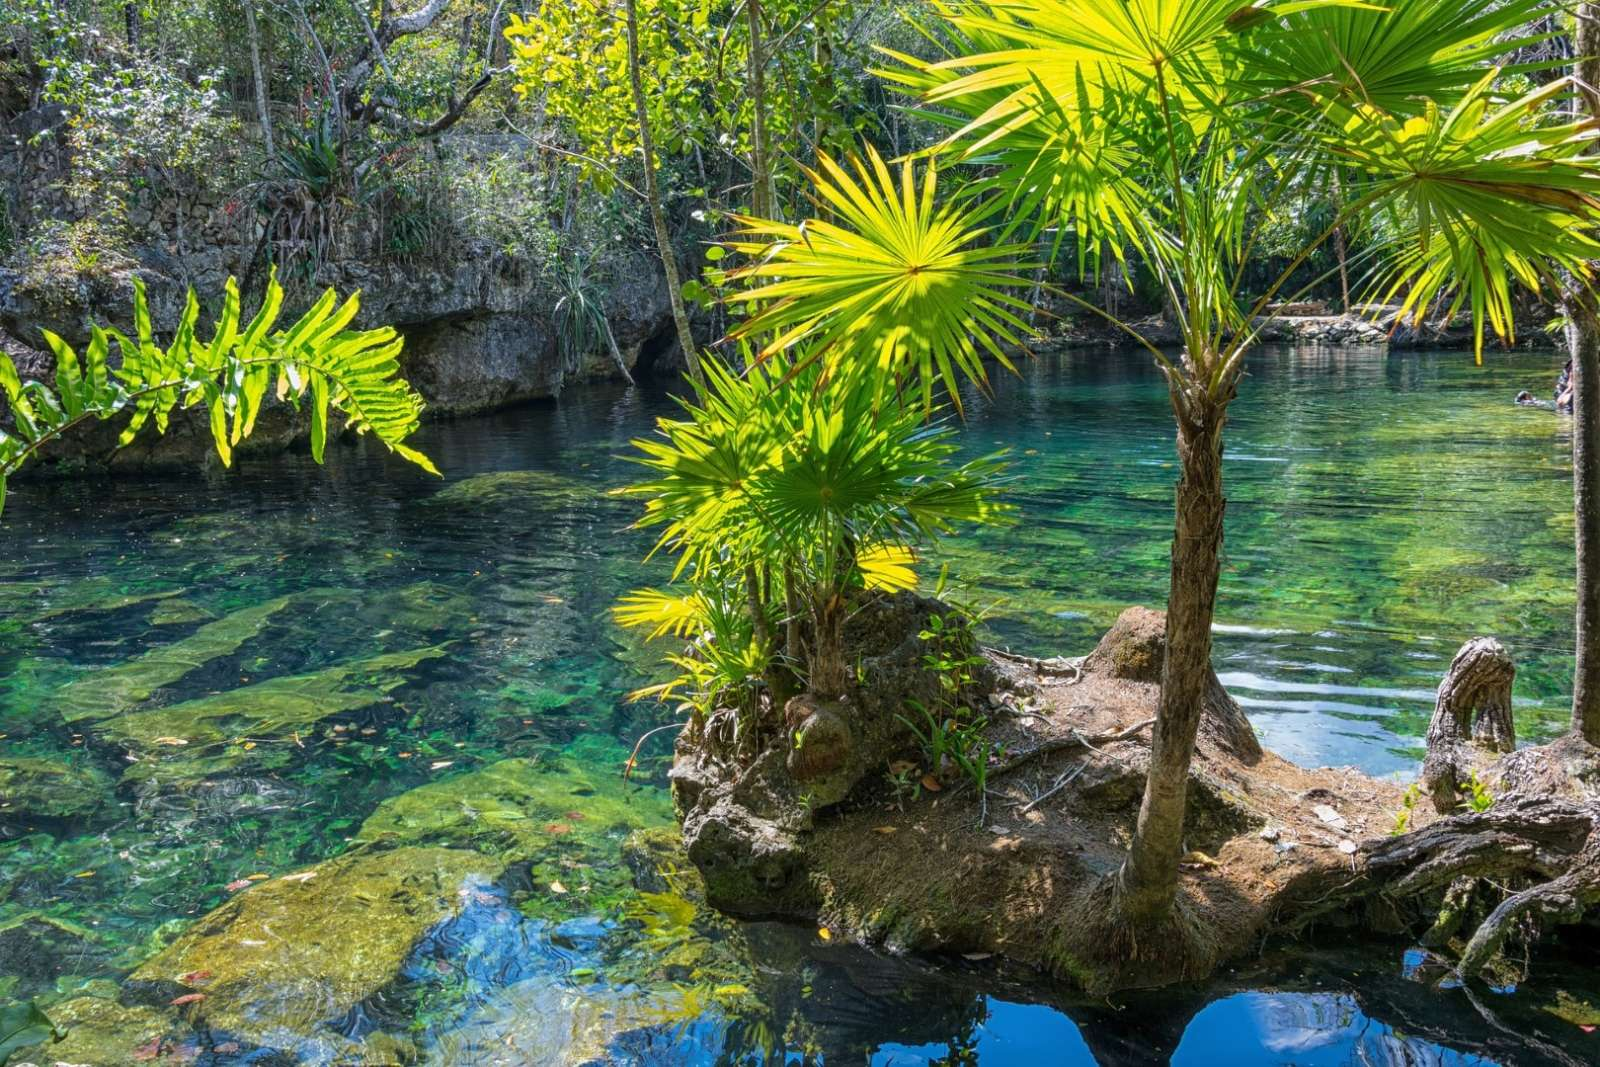 A beautiful cenote in the Yucatan Peninsula of Mexico